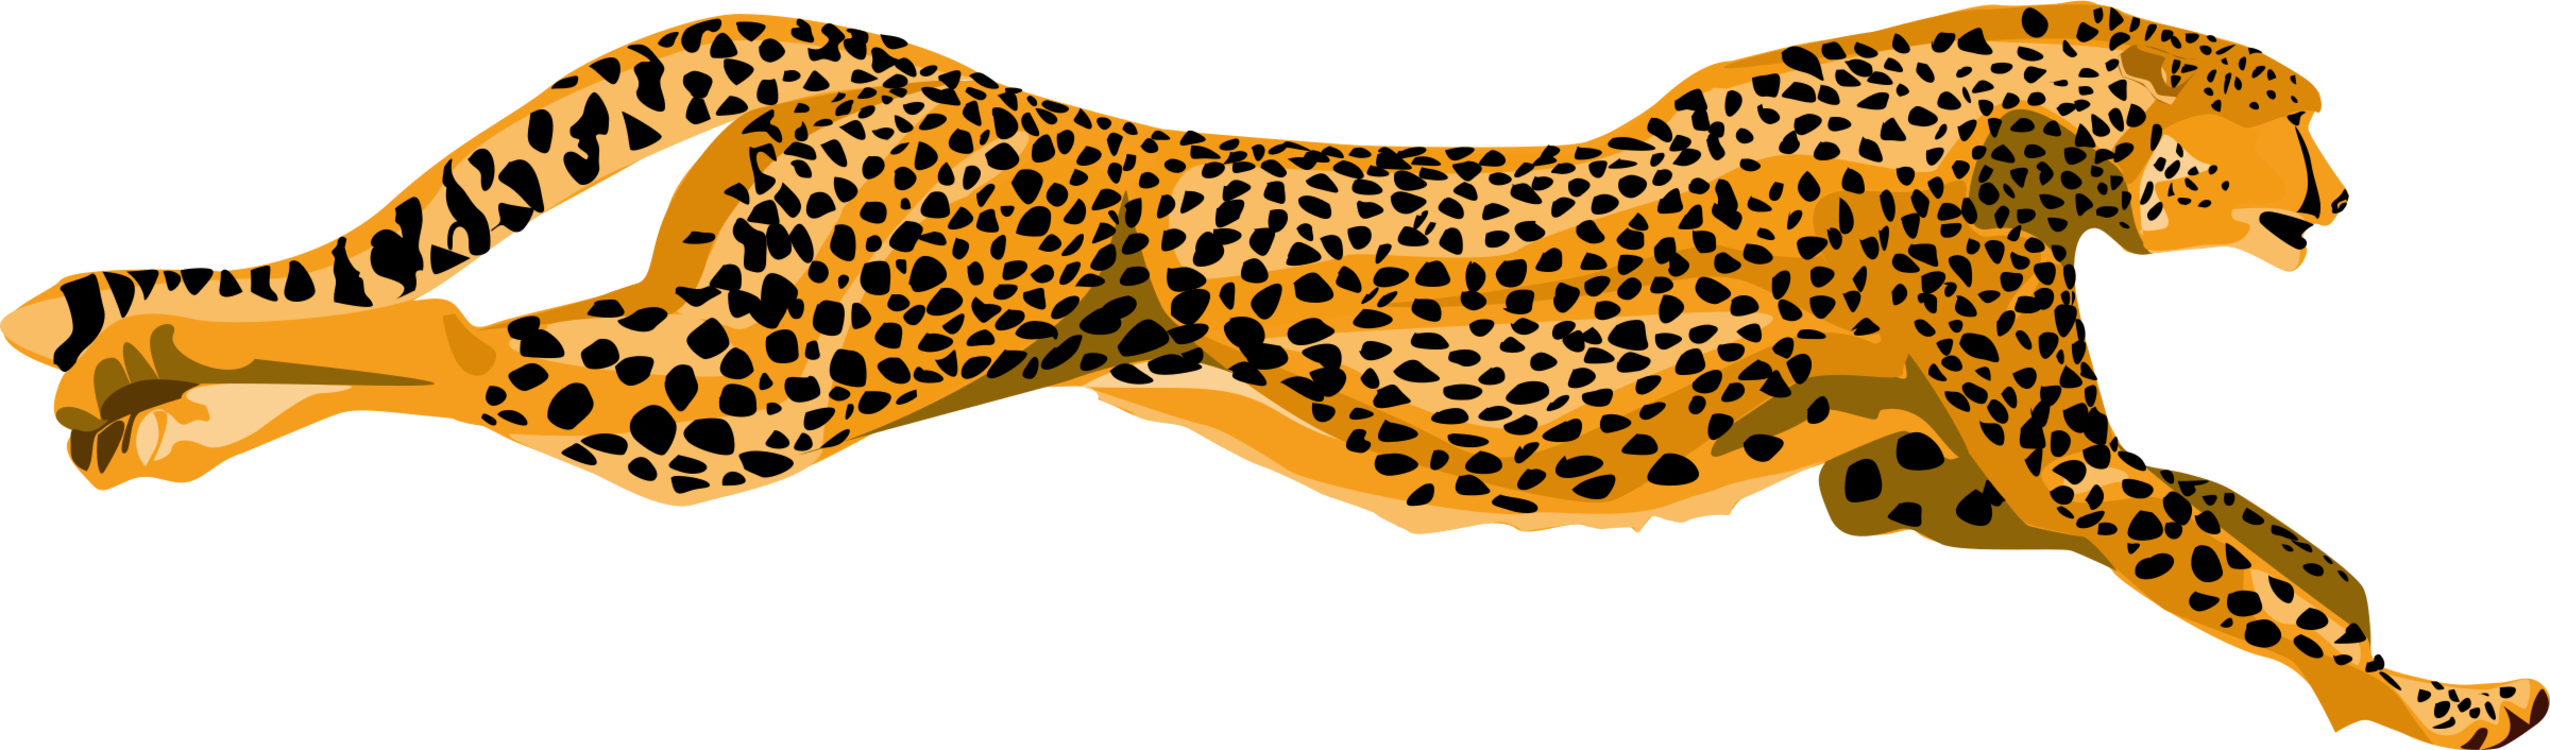 Cheetahs drawing leopard. Cheetah jaguar felidae lion